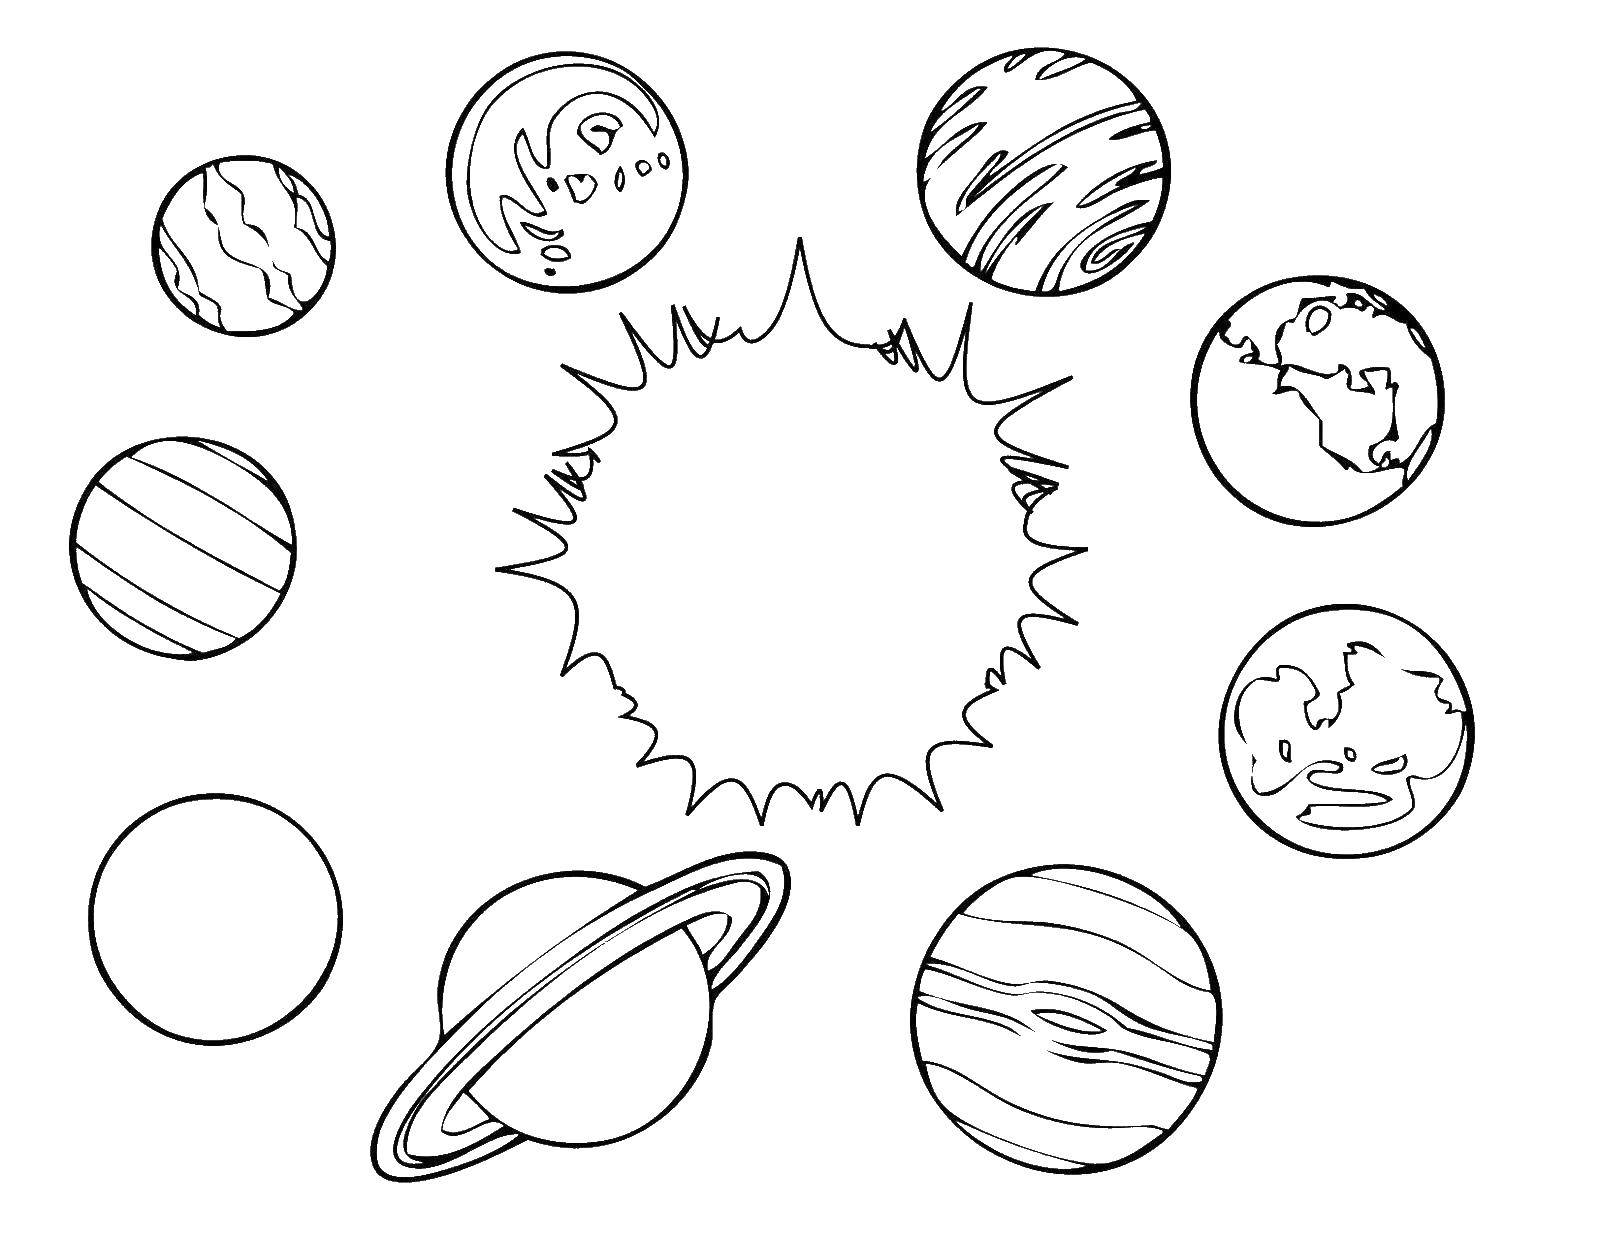 Coloring Solar system. Category Space. Tags:  space, sun, planets.